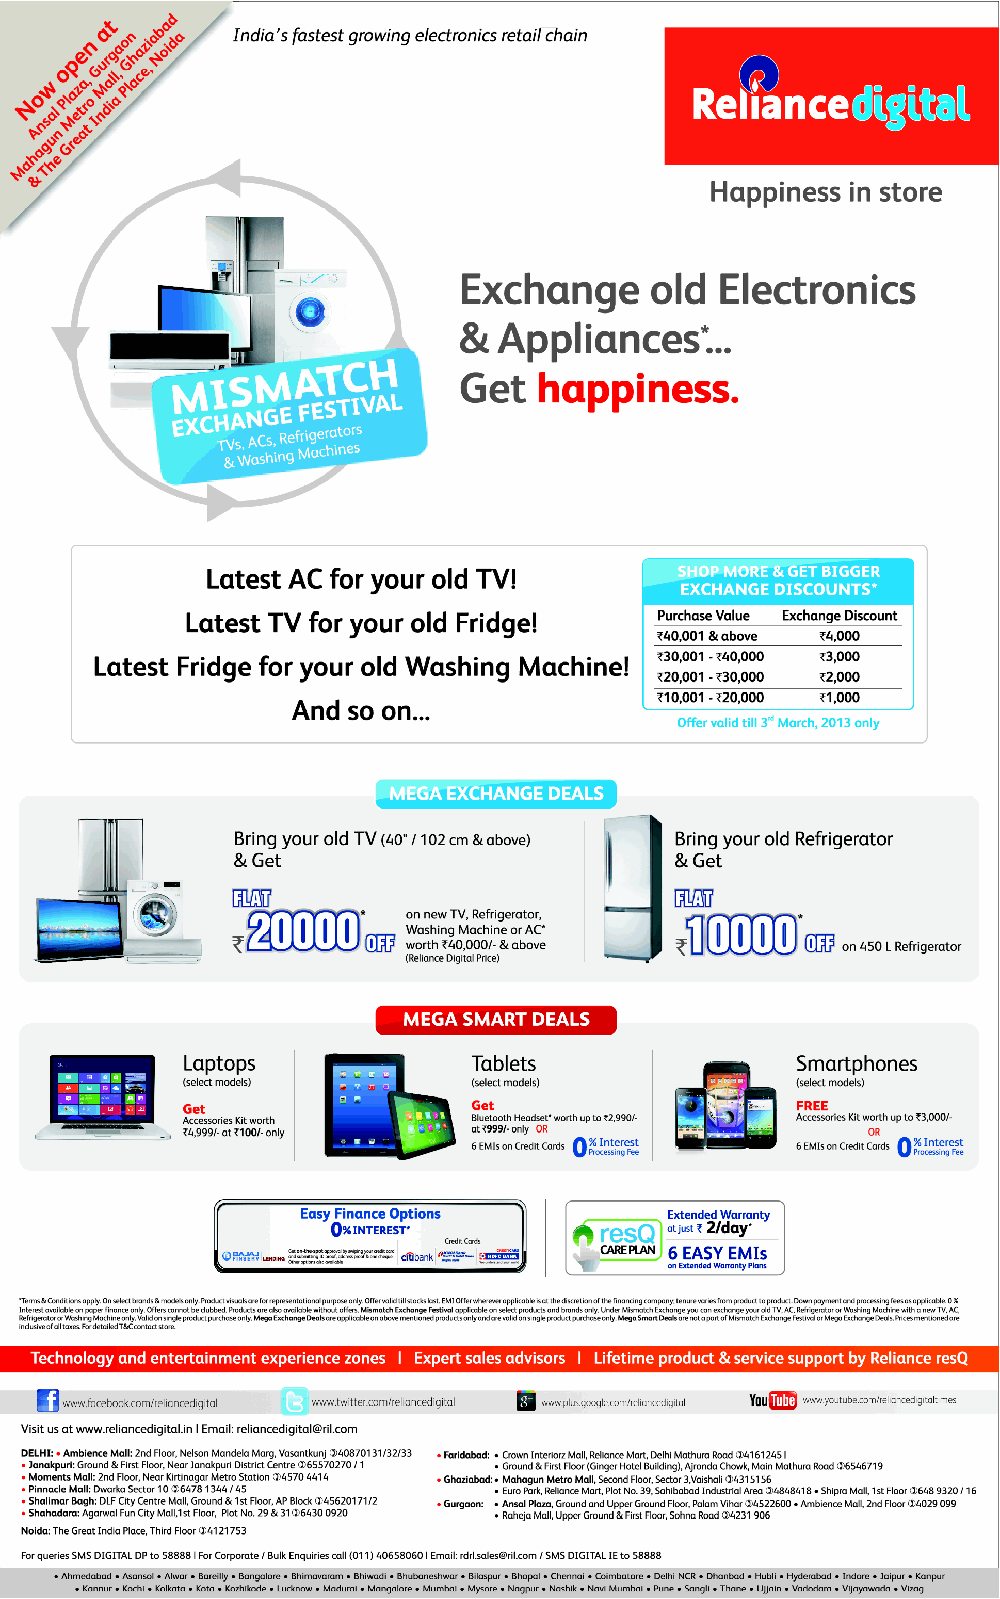 Reliance Digital - Maha Mismatch Exchange Offer